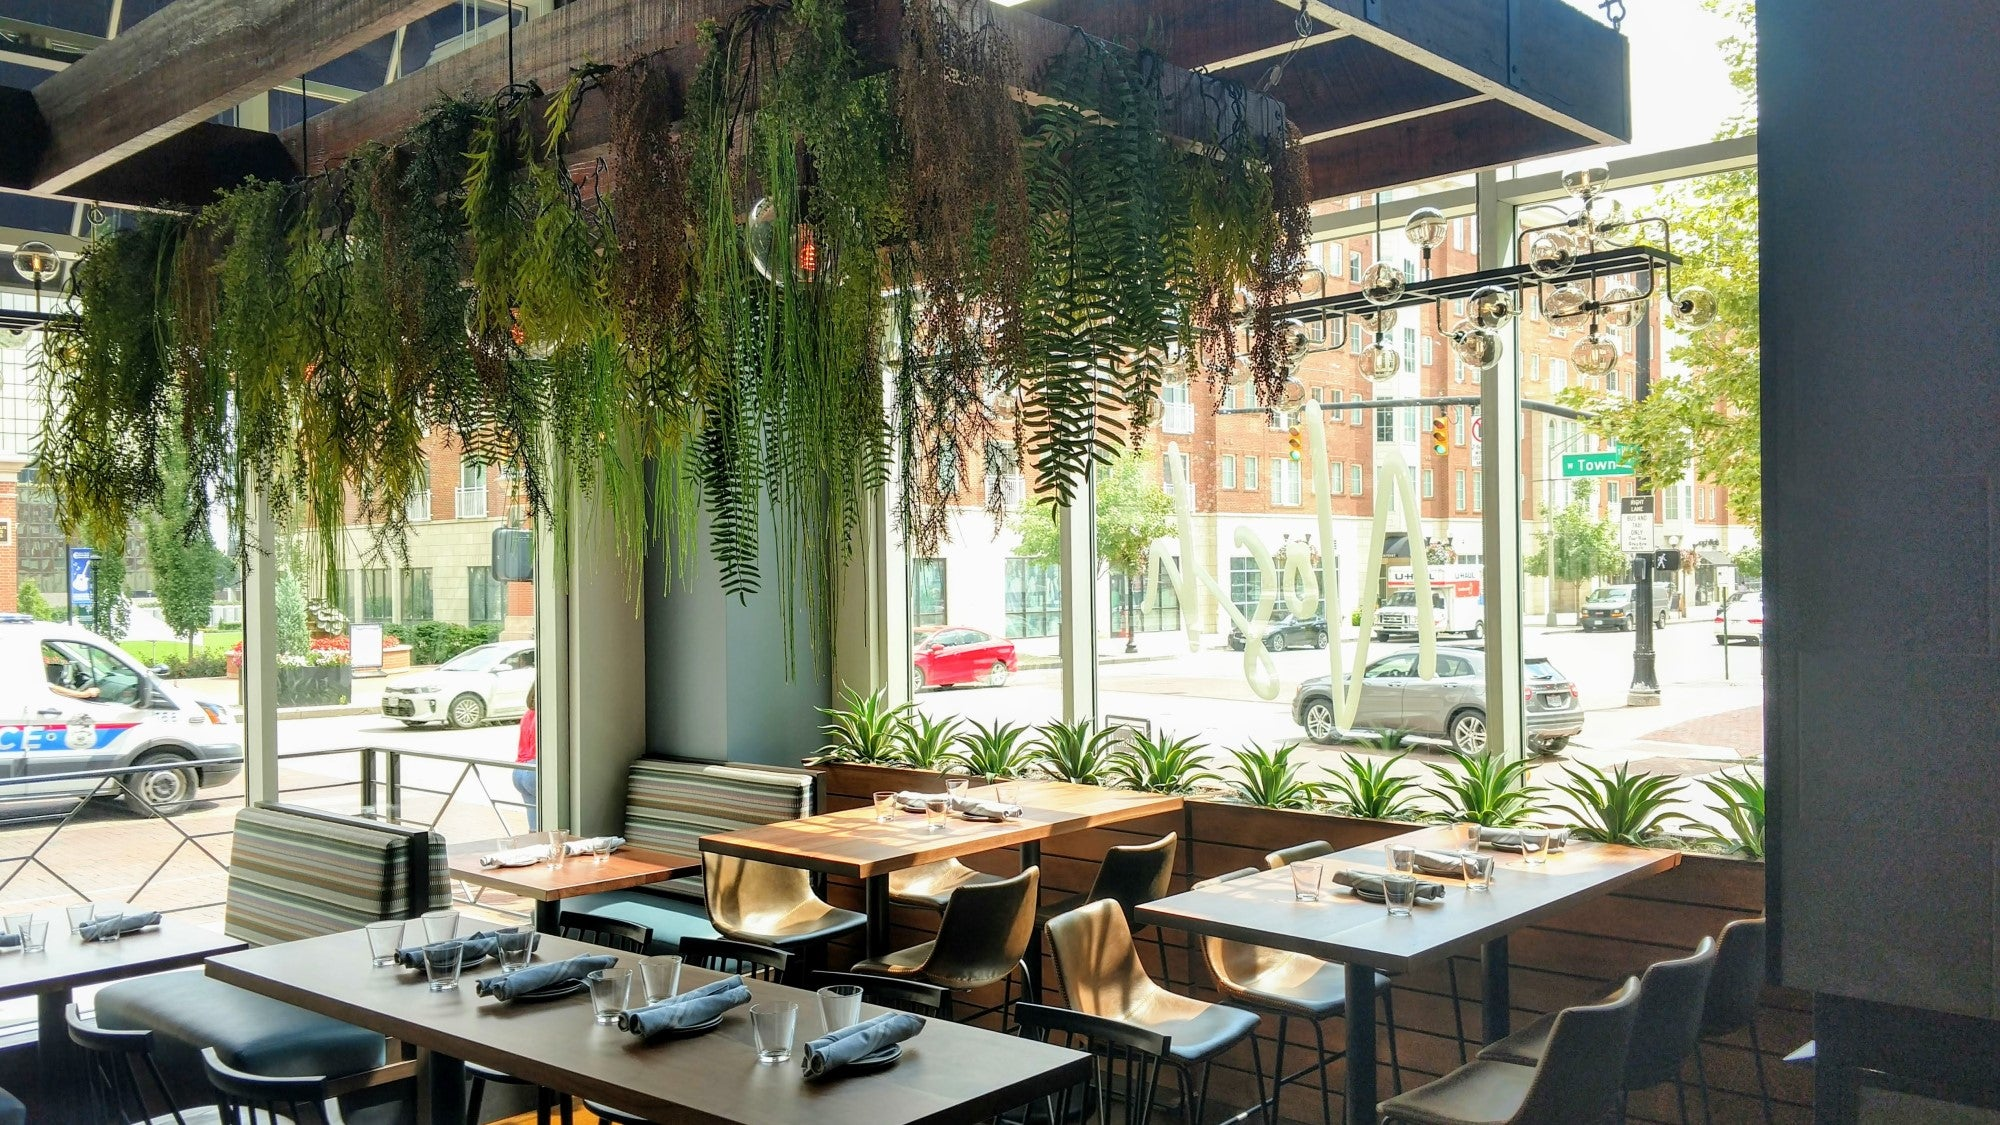 Hanging garden in restaurant composed of faux plants. Live agave plants in window boxes.